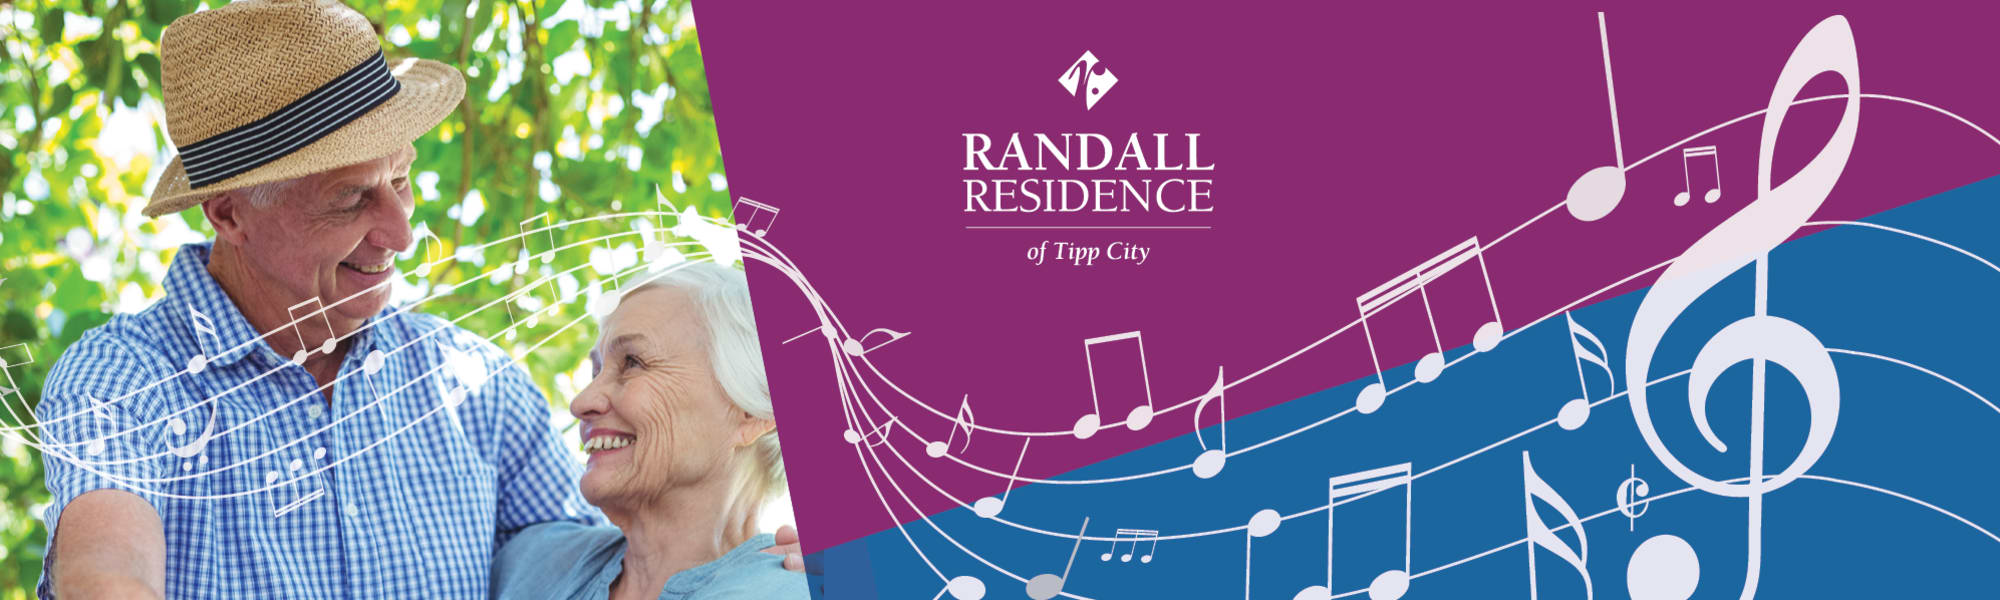 Events at Randall Residence of Tipp City in Tipp City, Ohio